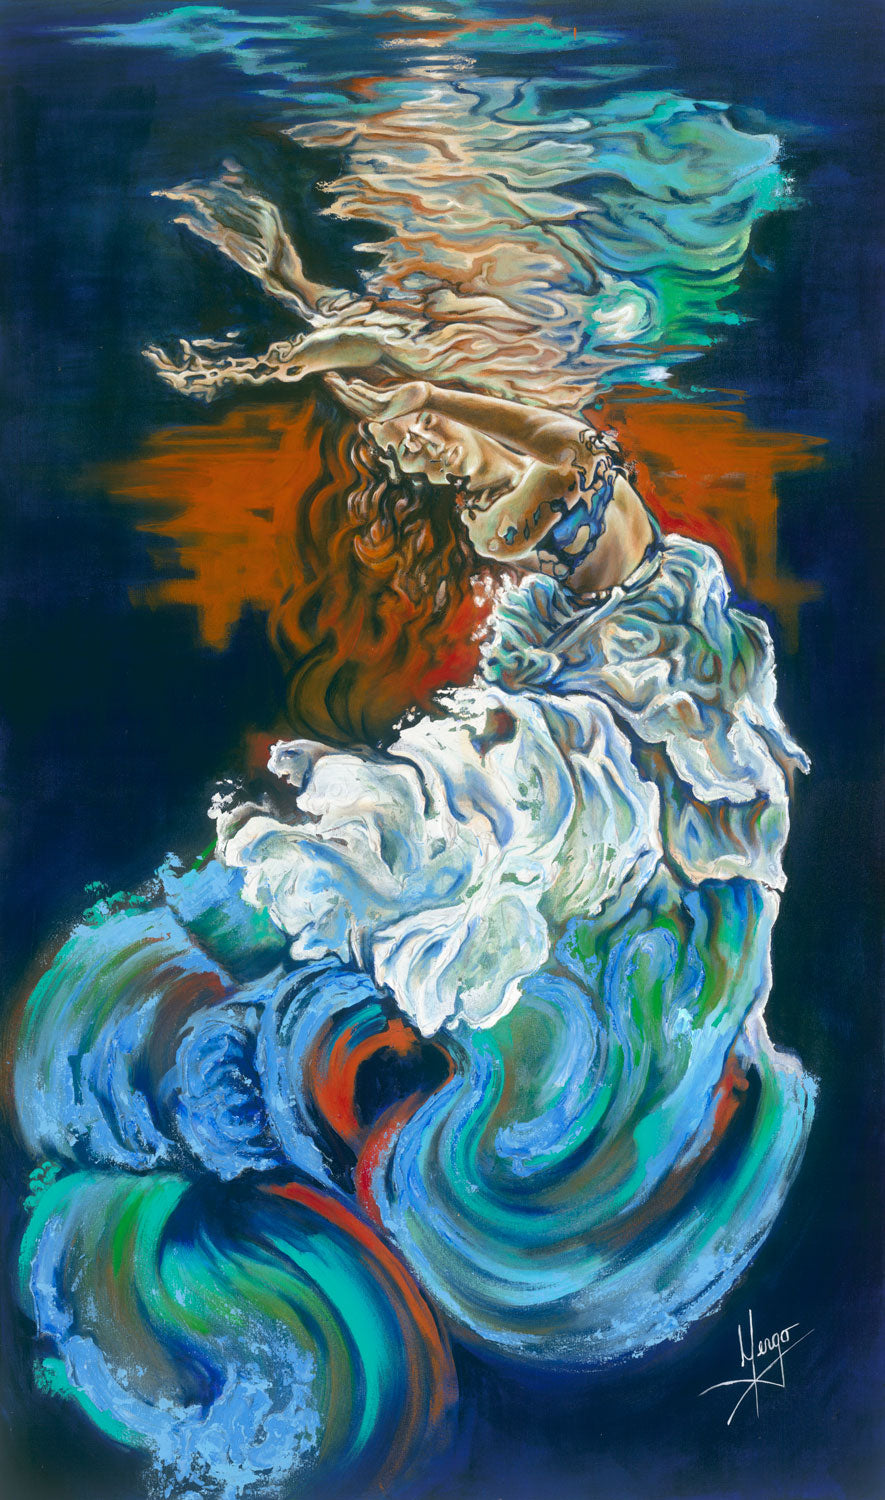 """Dive into your soul"" figurative painting of a woman underwater with a blue and green dress embellished"